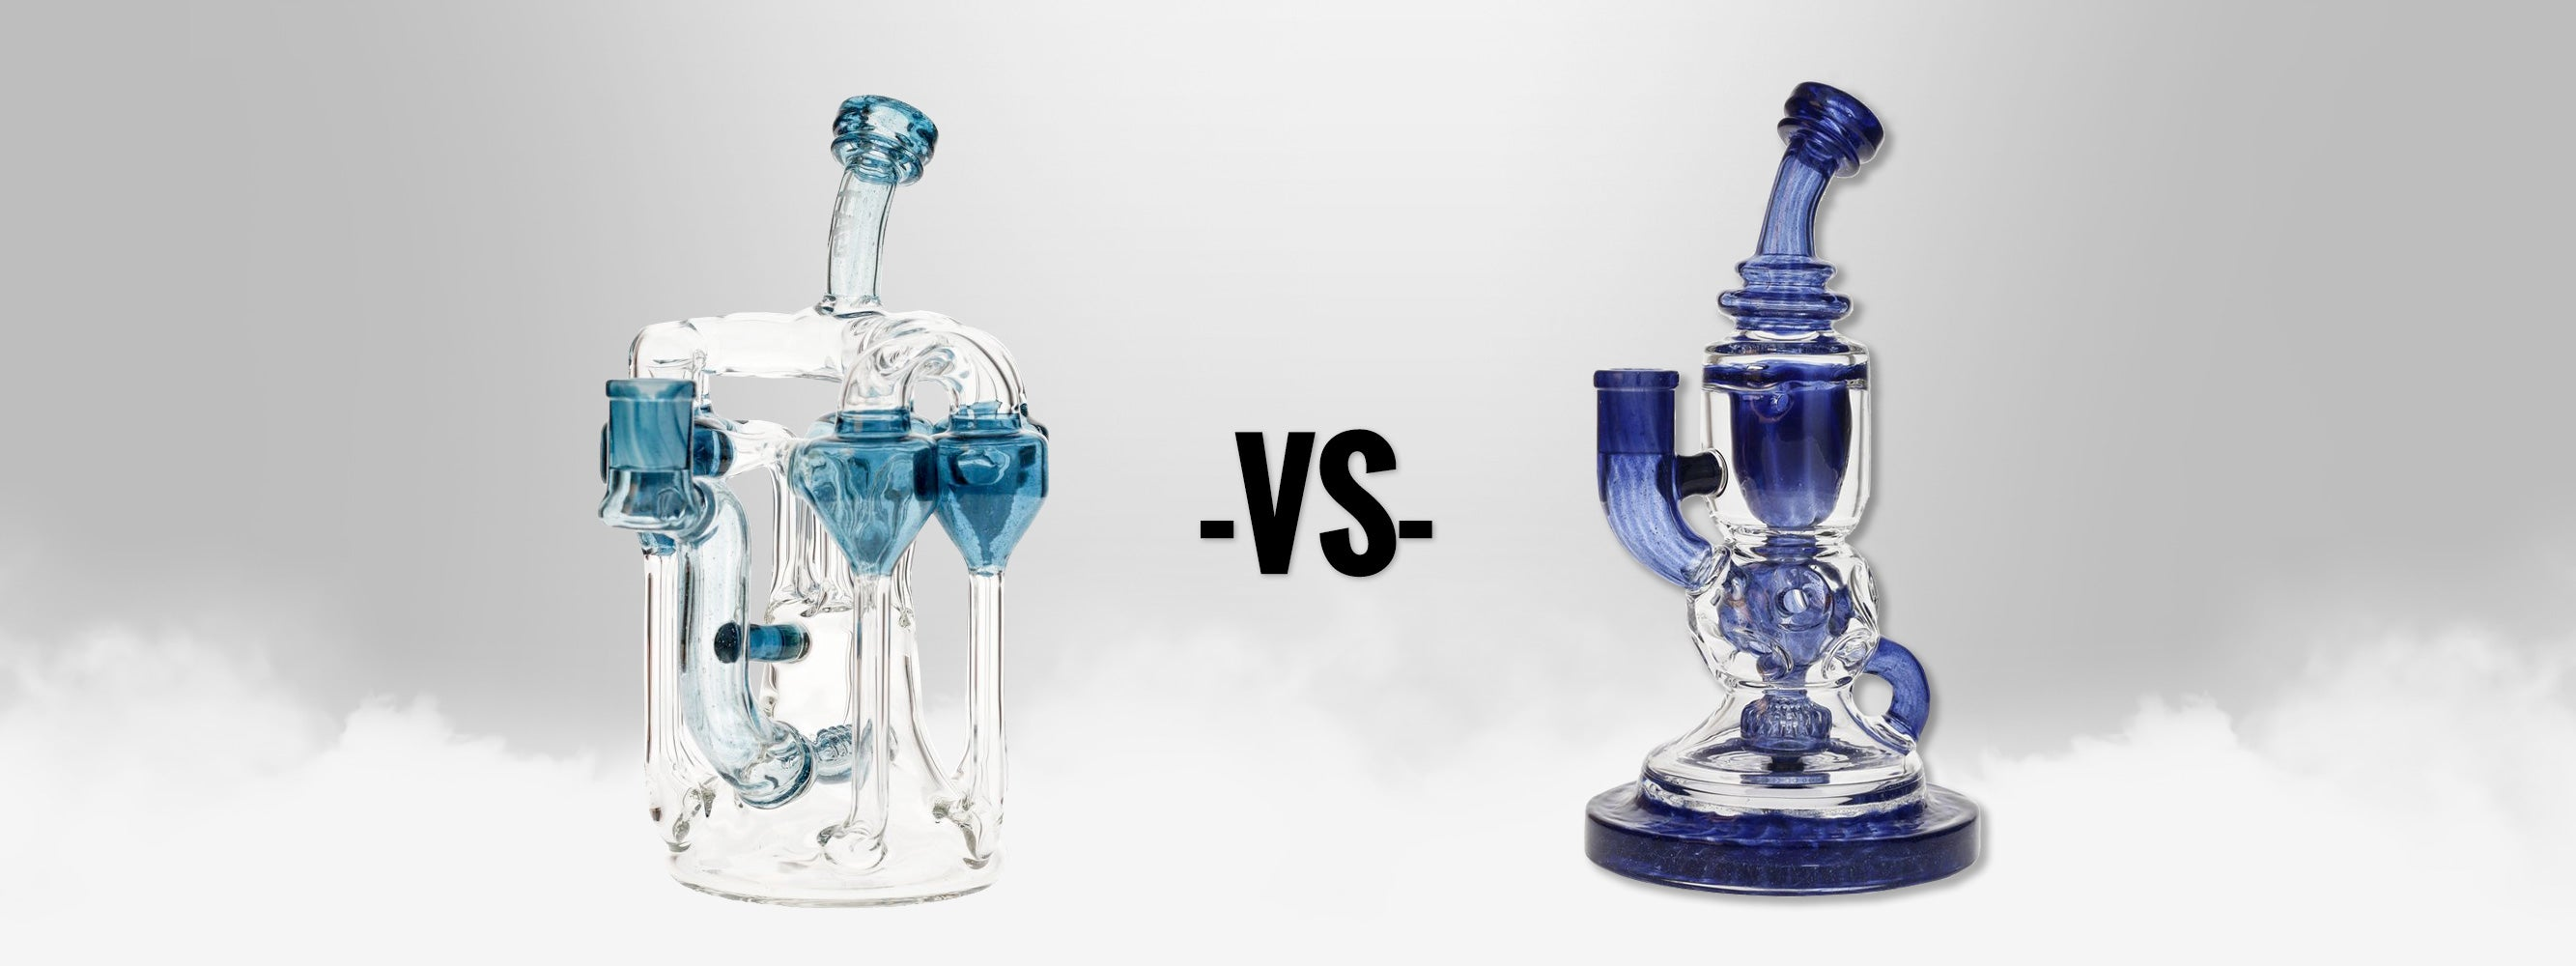 Incycler & Recycler Rigs: What's The Difference?